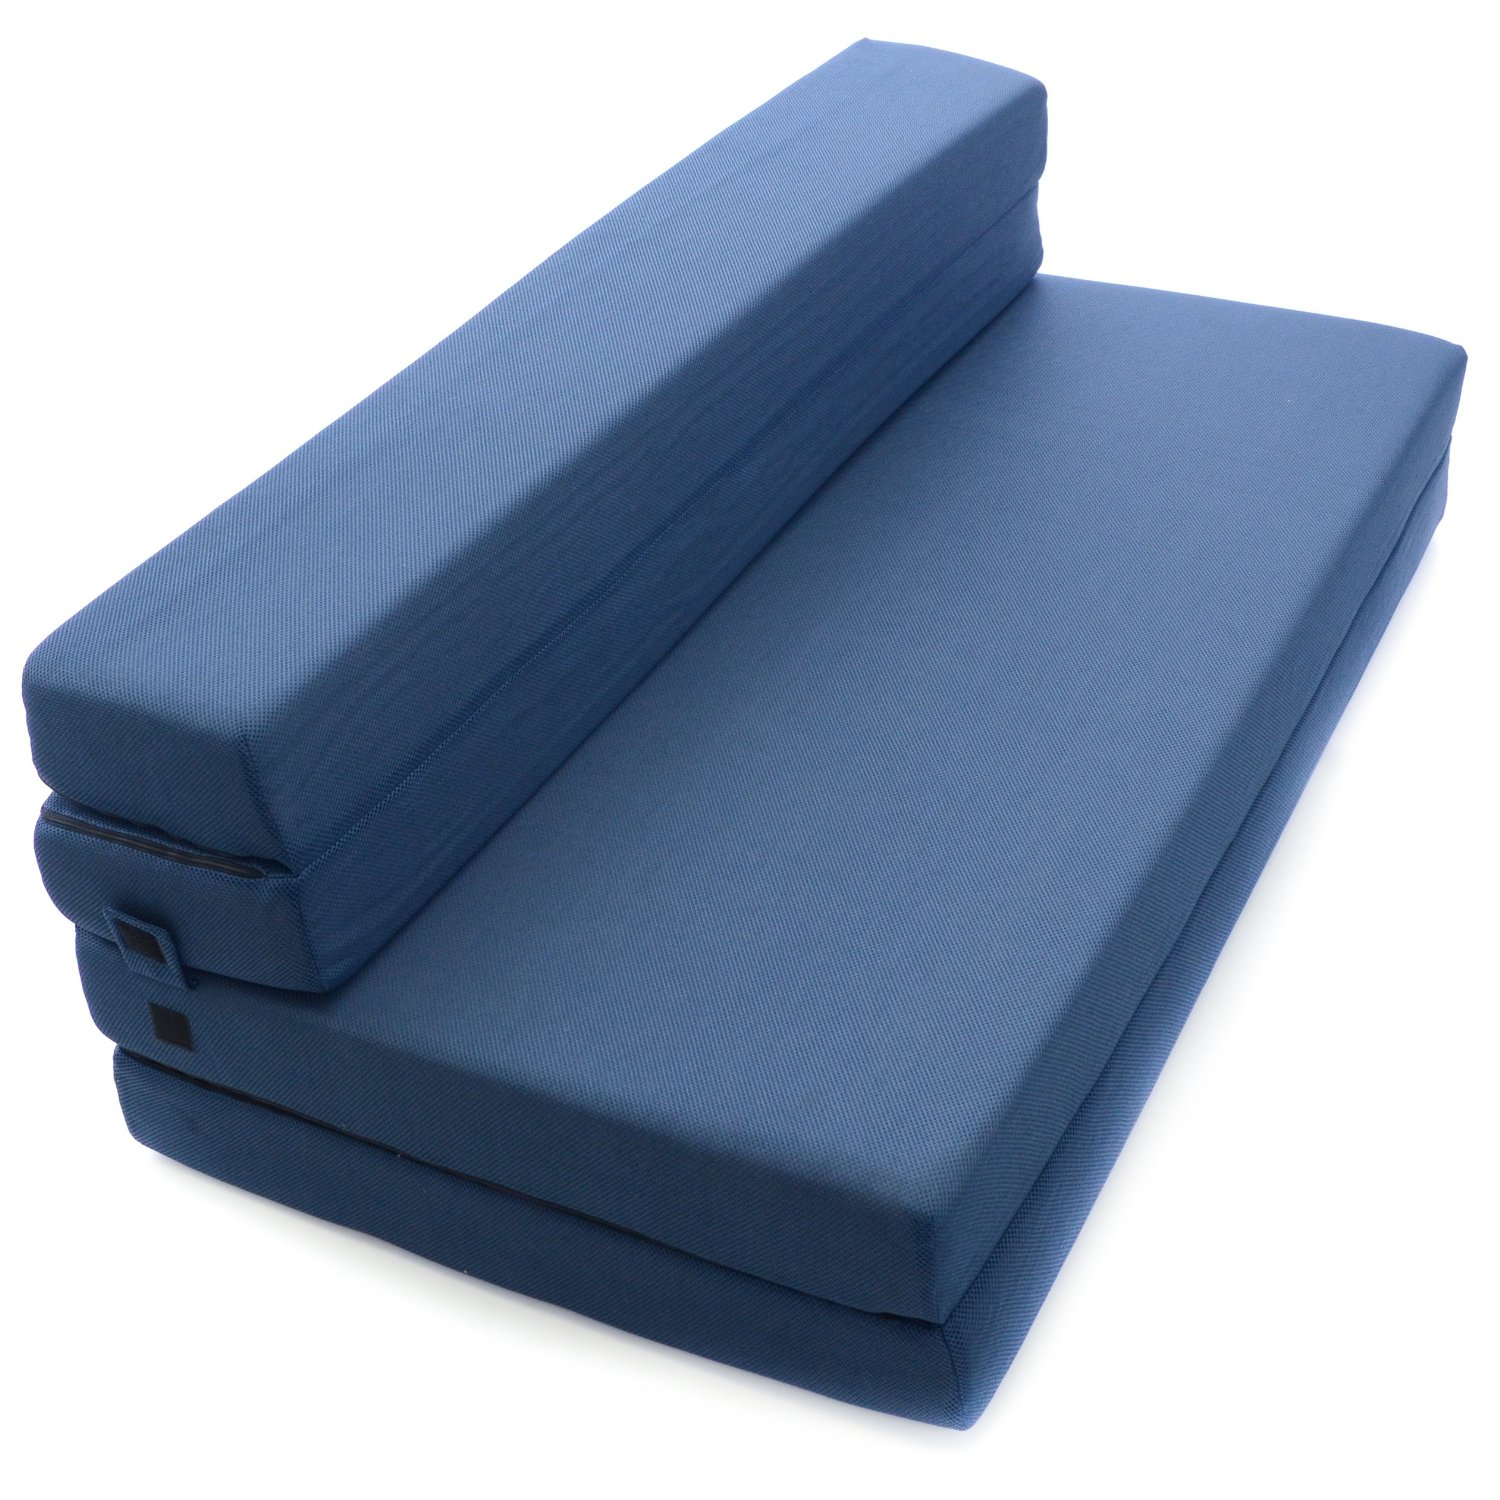 Tri Fold Foam Folding Mattress And Sofa